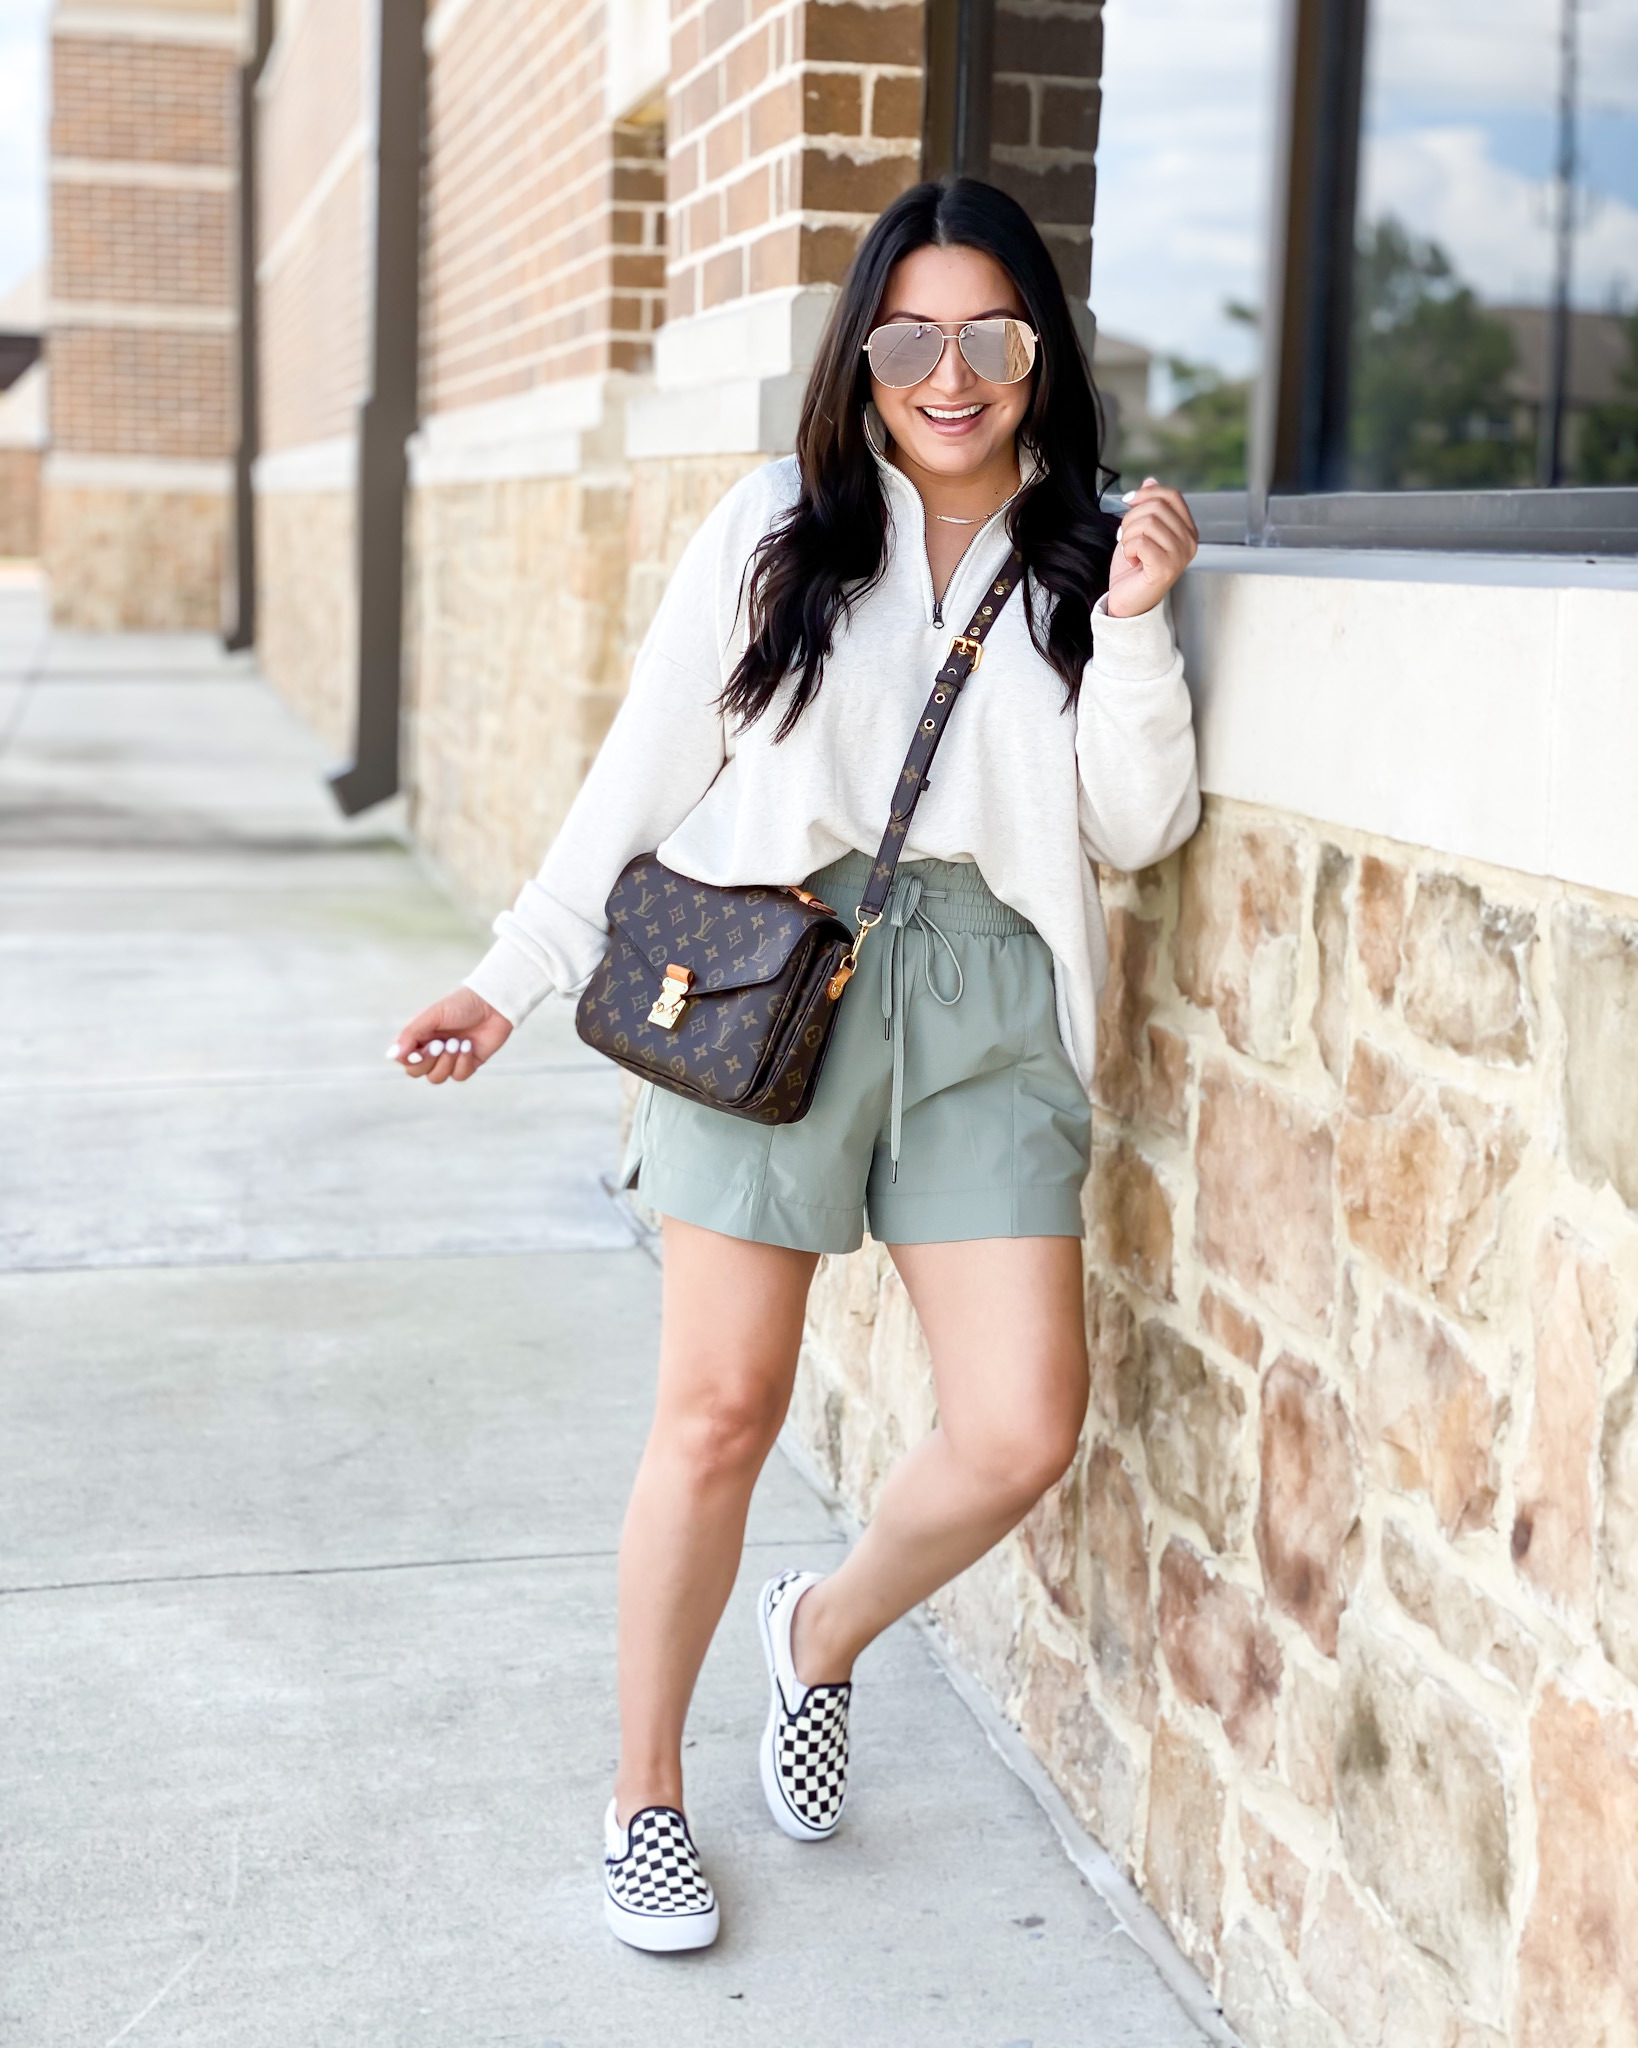 Houston lifestyle and fashion blogger LuxMommy sharing outfit of the day